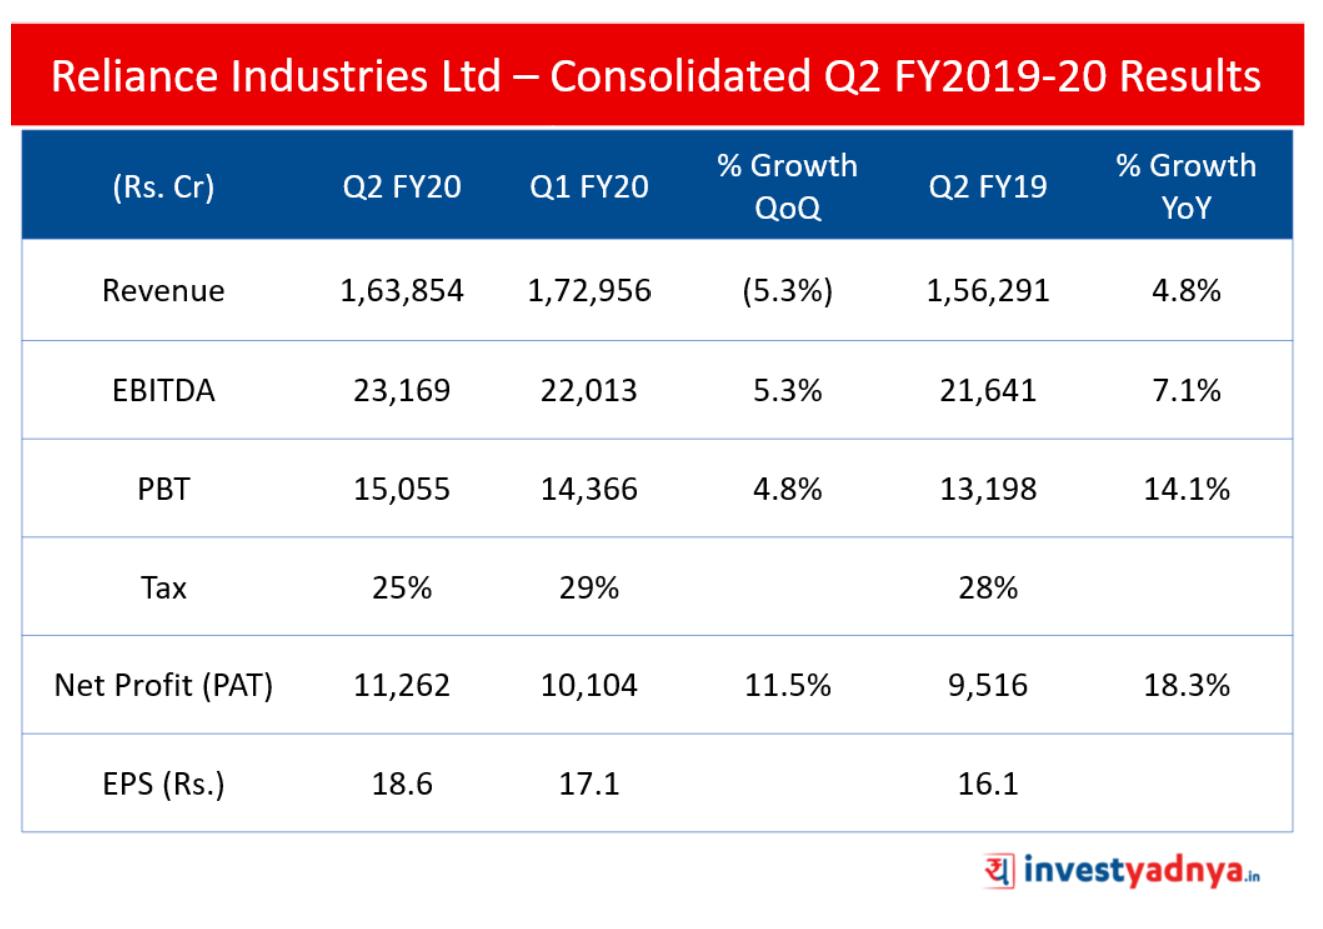 Reliance Industries Q2 Results